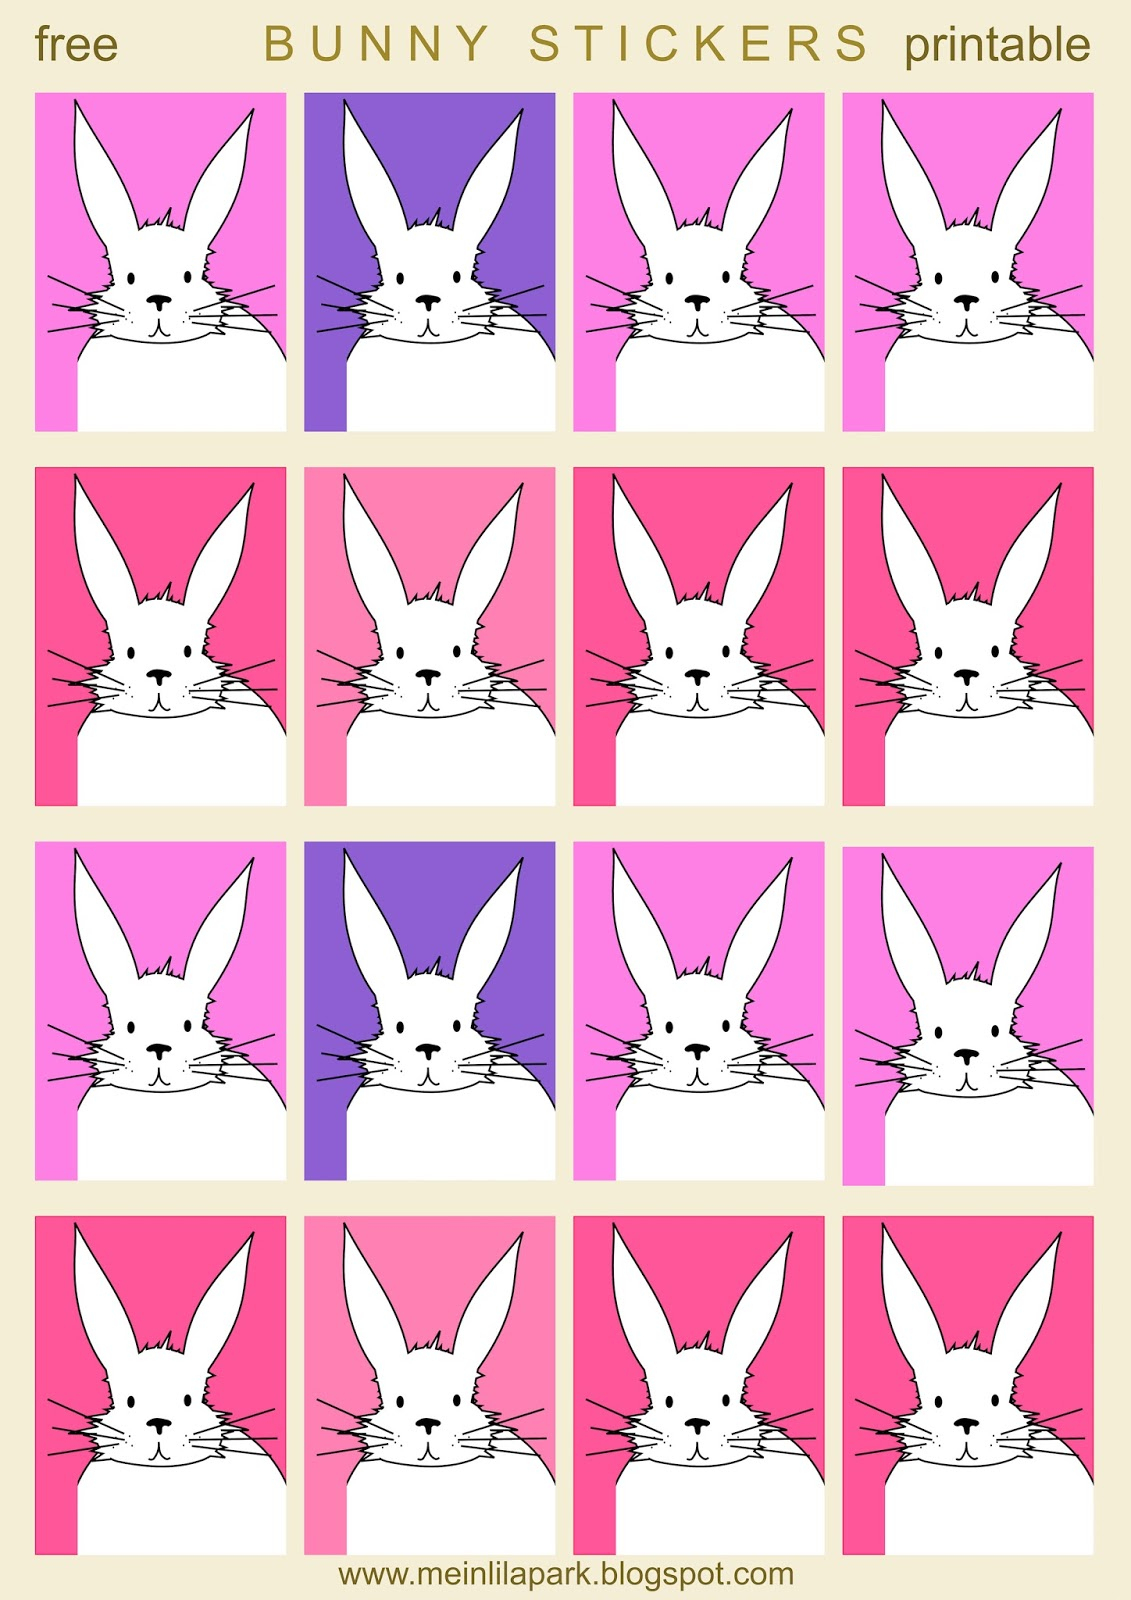 Free Printable Cute Bunny Planner Stickers - Hasensticker - Freebie - Free Printable Bunny Pictures